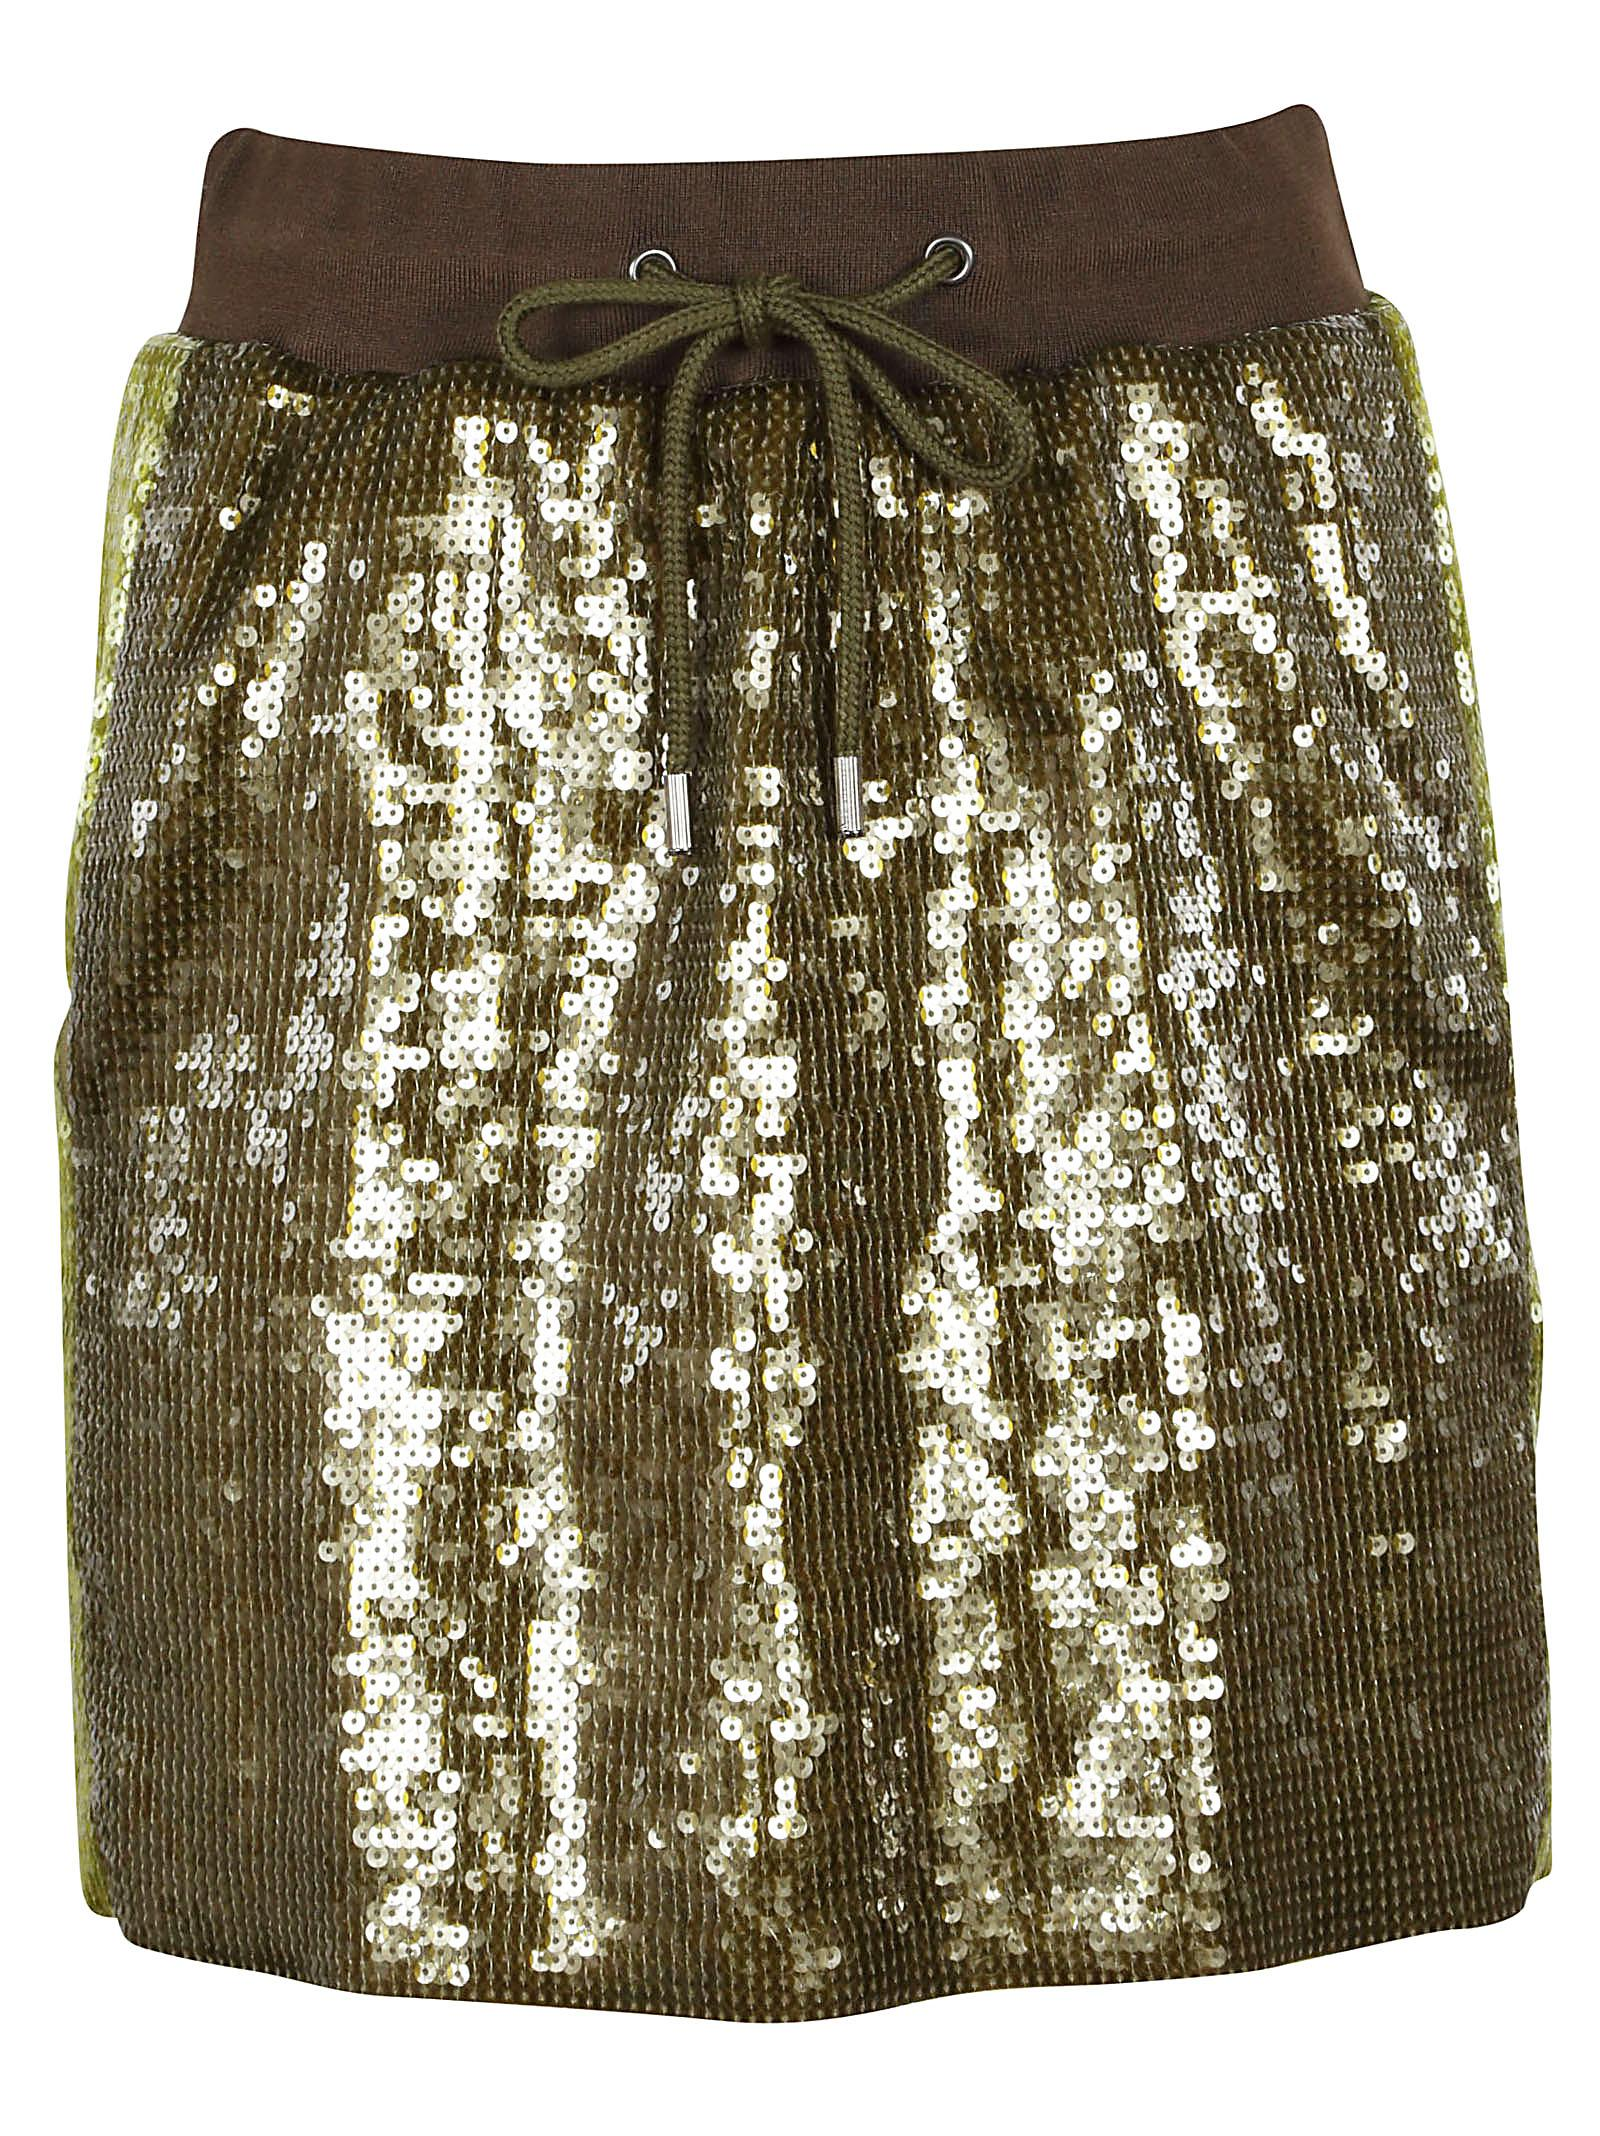 Alberta Ferretti side stripe sequin mini skirt Buy Cheap New Arrival Outlet Cheap Quality bT1TNZf